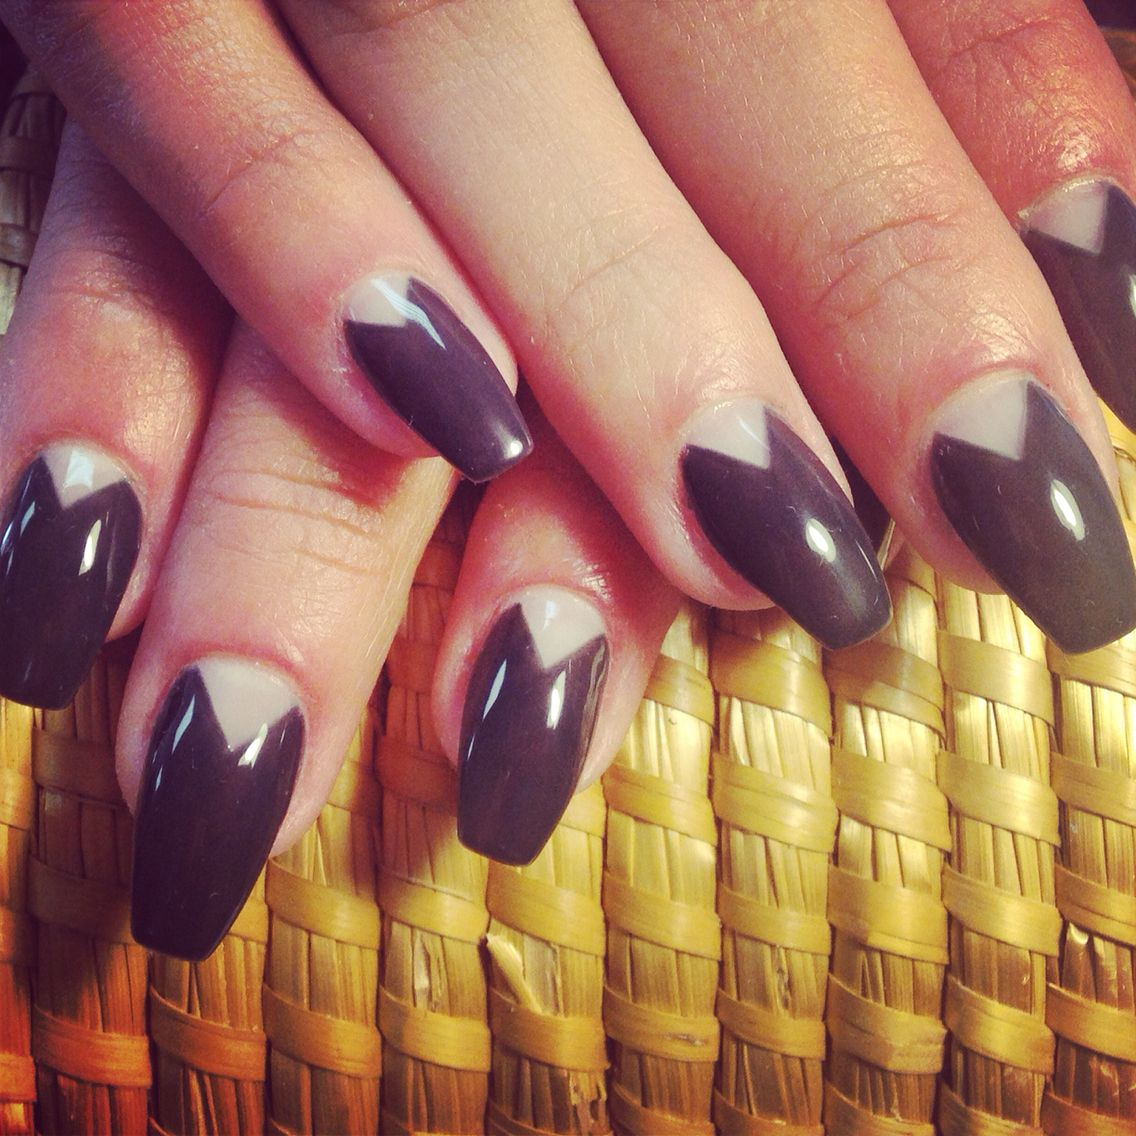 New Shape of ballerina or coffin style nails